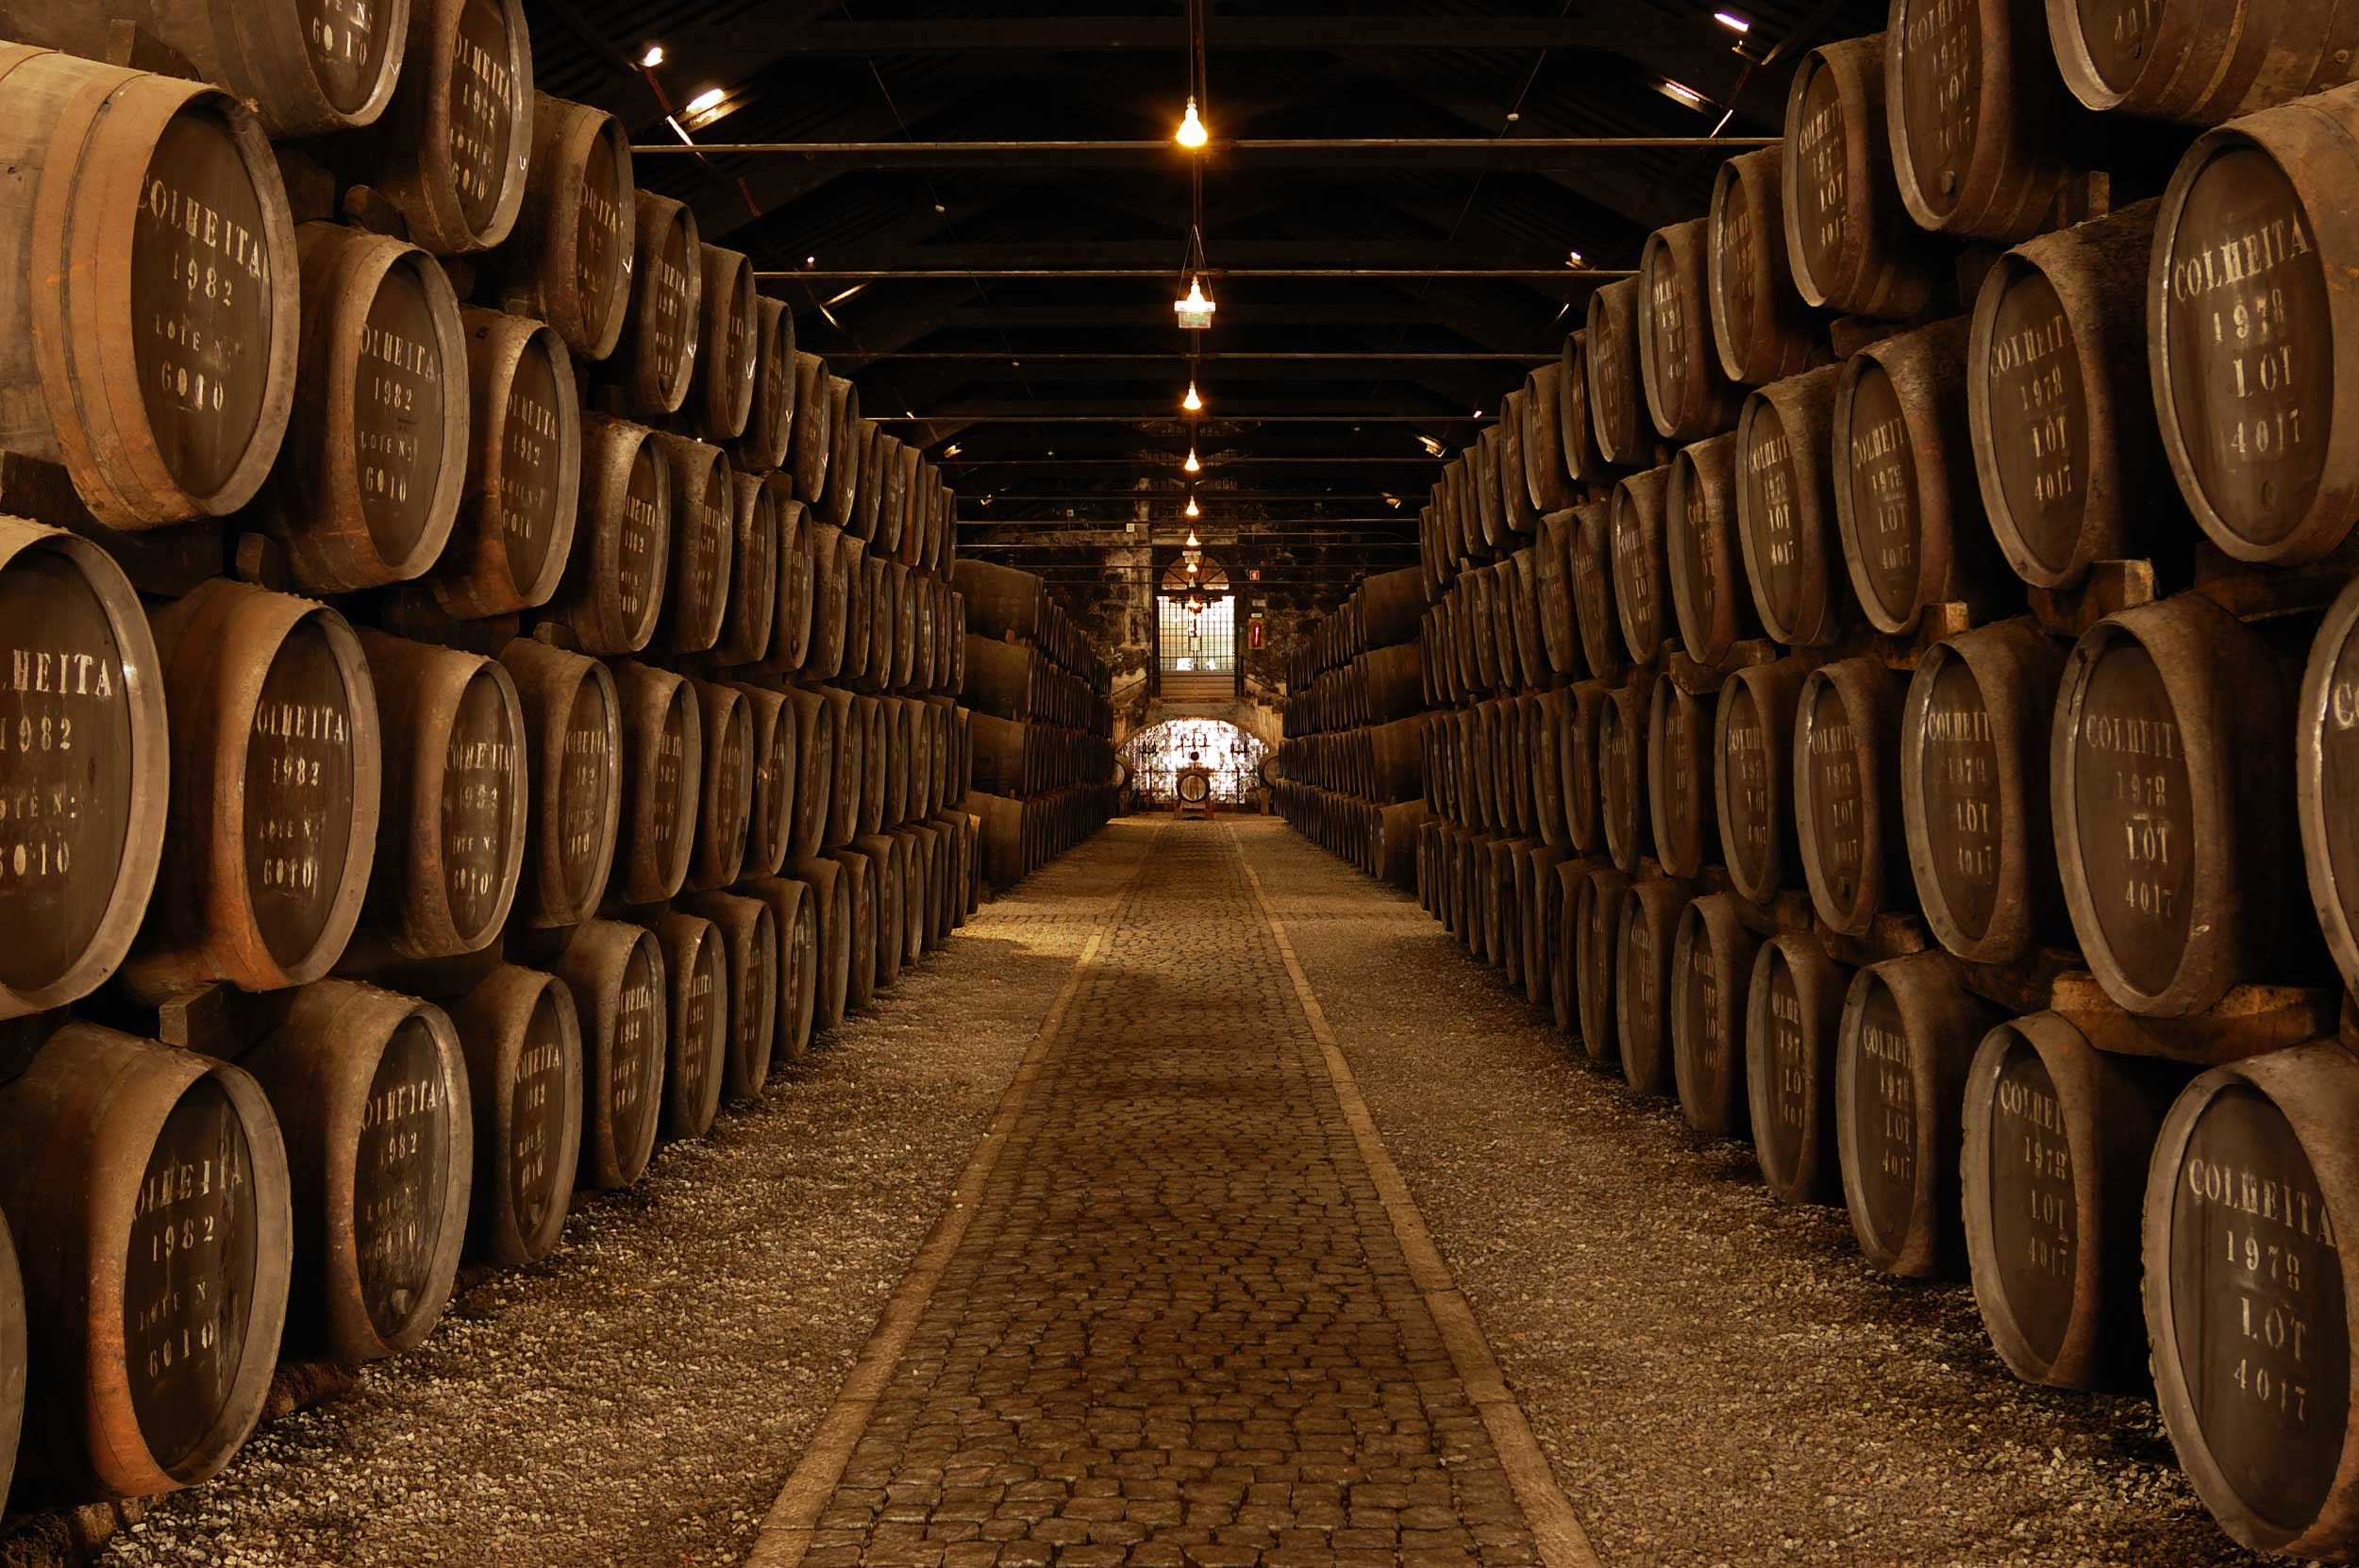 Rows of stacked wooden barrels in a stone cellar, Porto